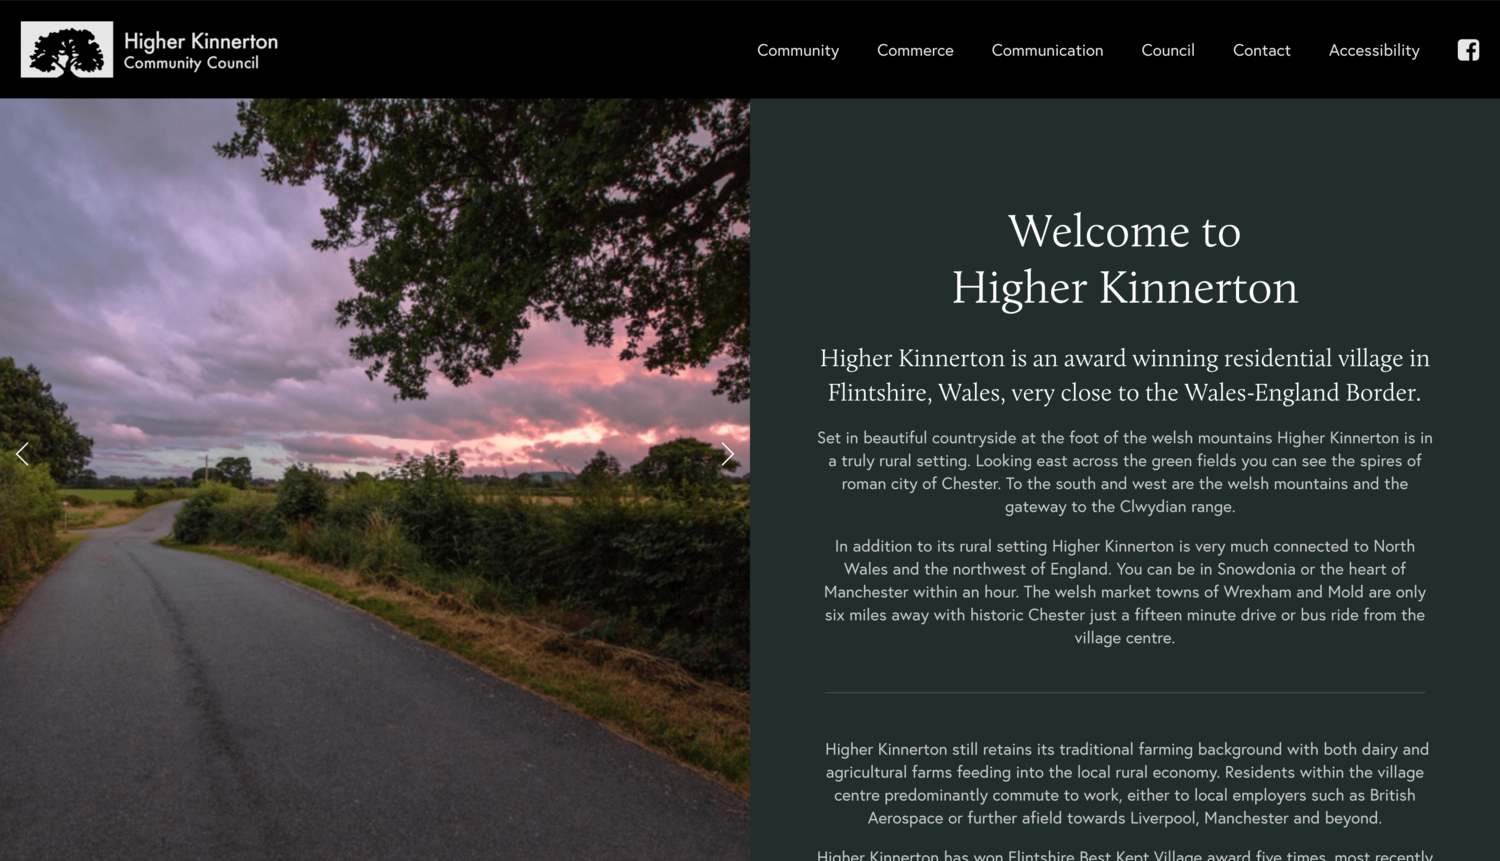 The new HKCC website.  View the live site here.